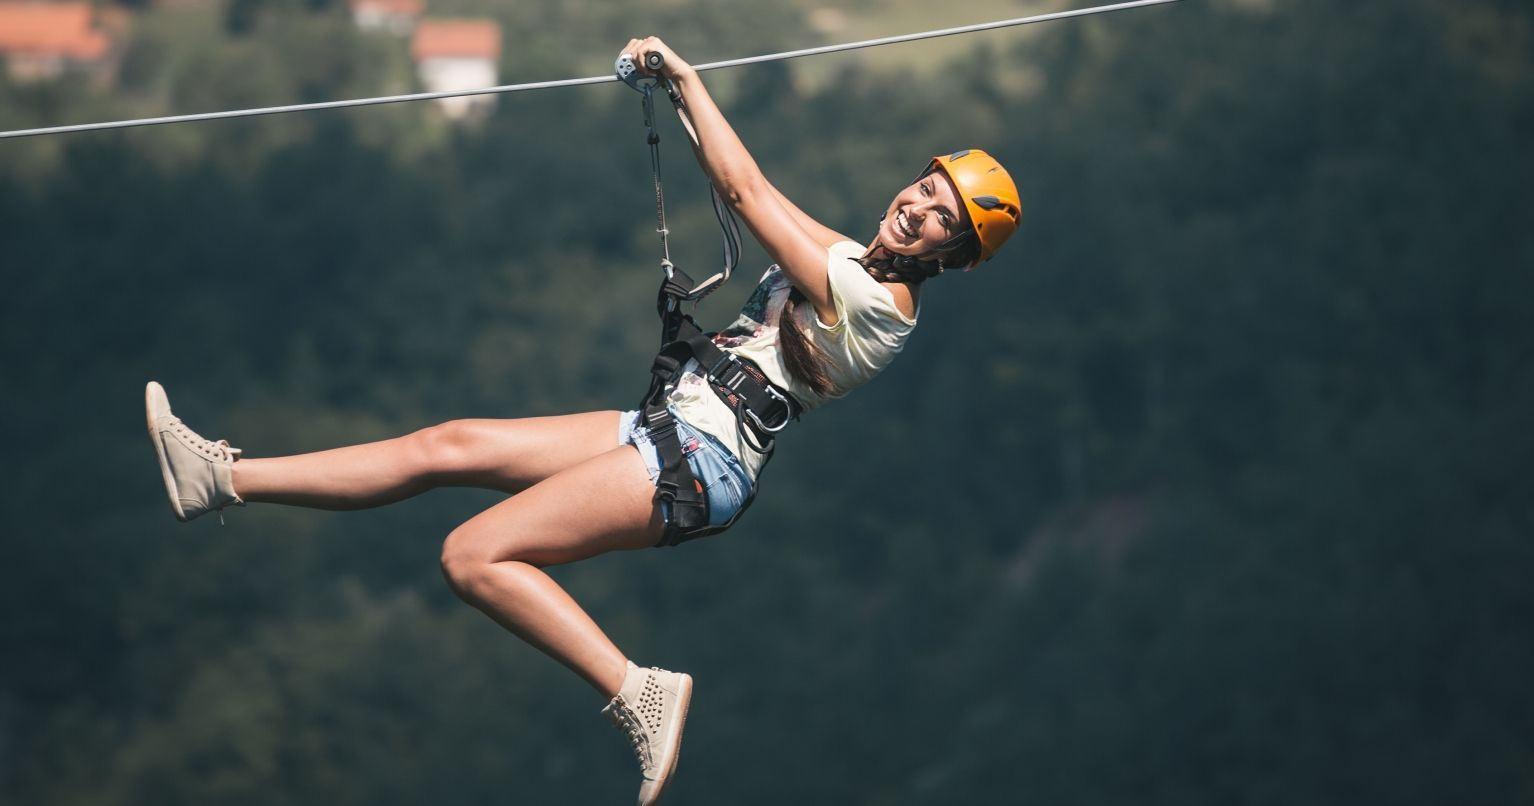 The World's Longest Zipline Flight Nepal Tinggly Experience Gifts